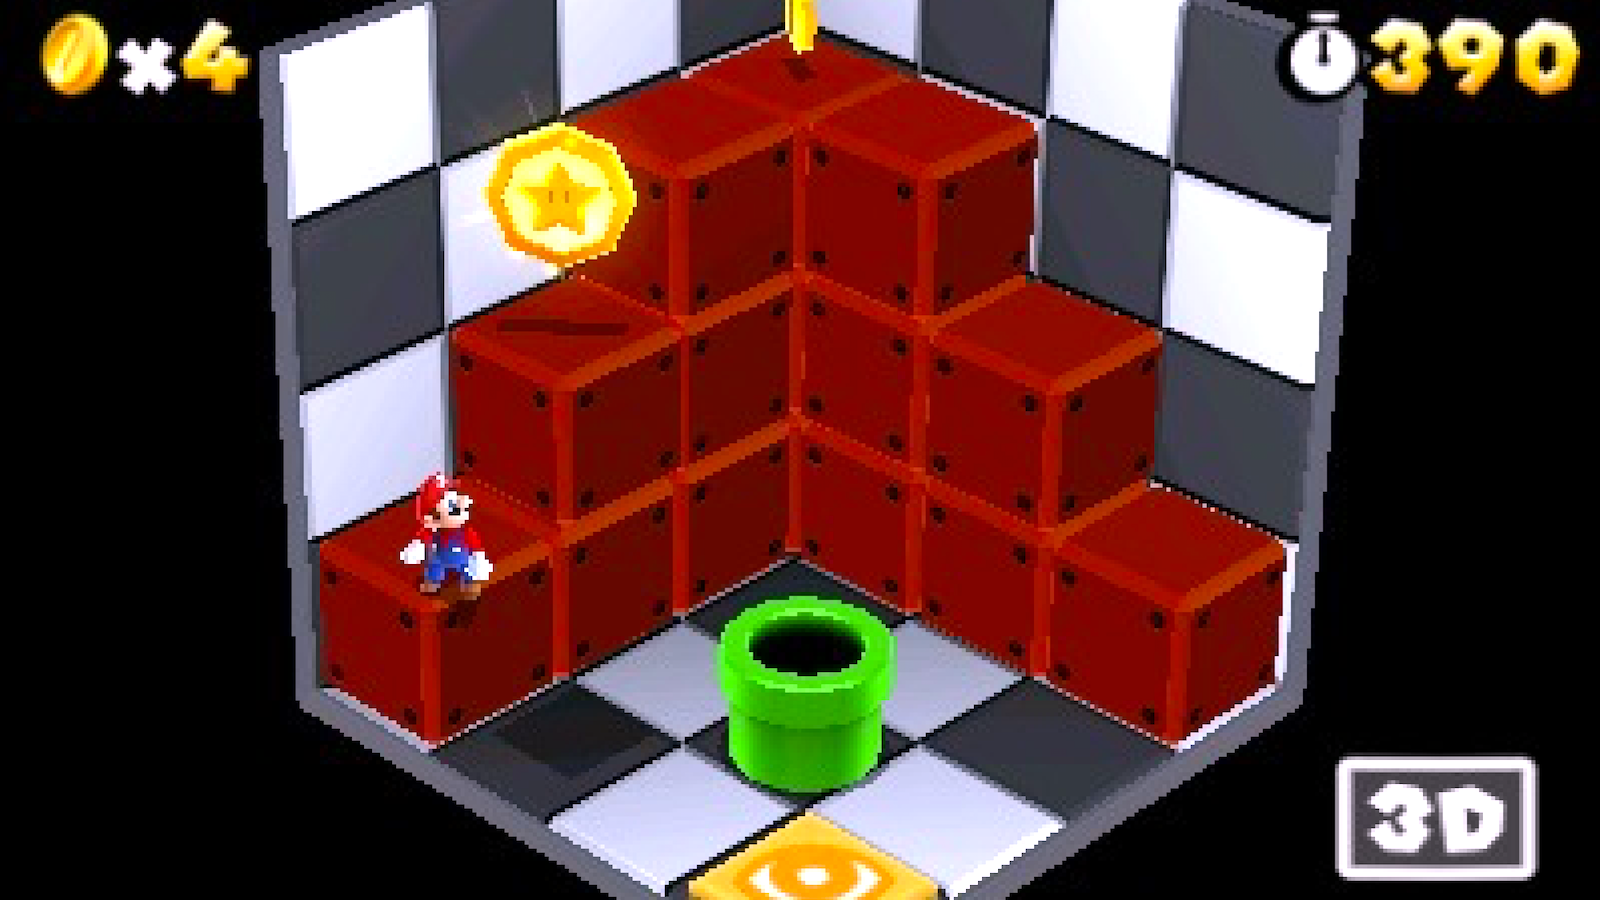 """The coin's not where you think it is. The console's  called """"3DS"""", but they still needed a big """"3D""""label…"""